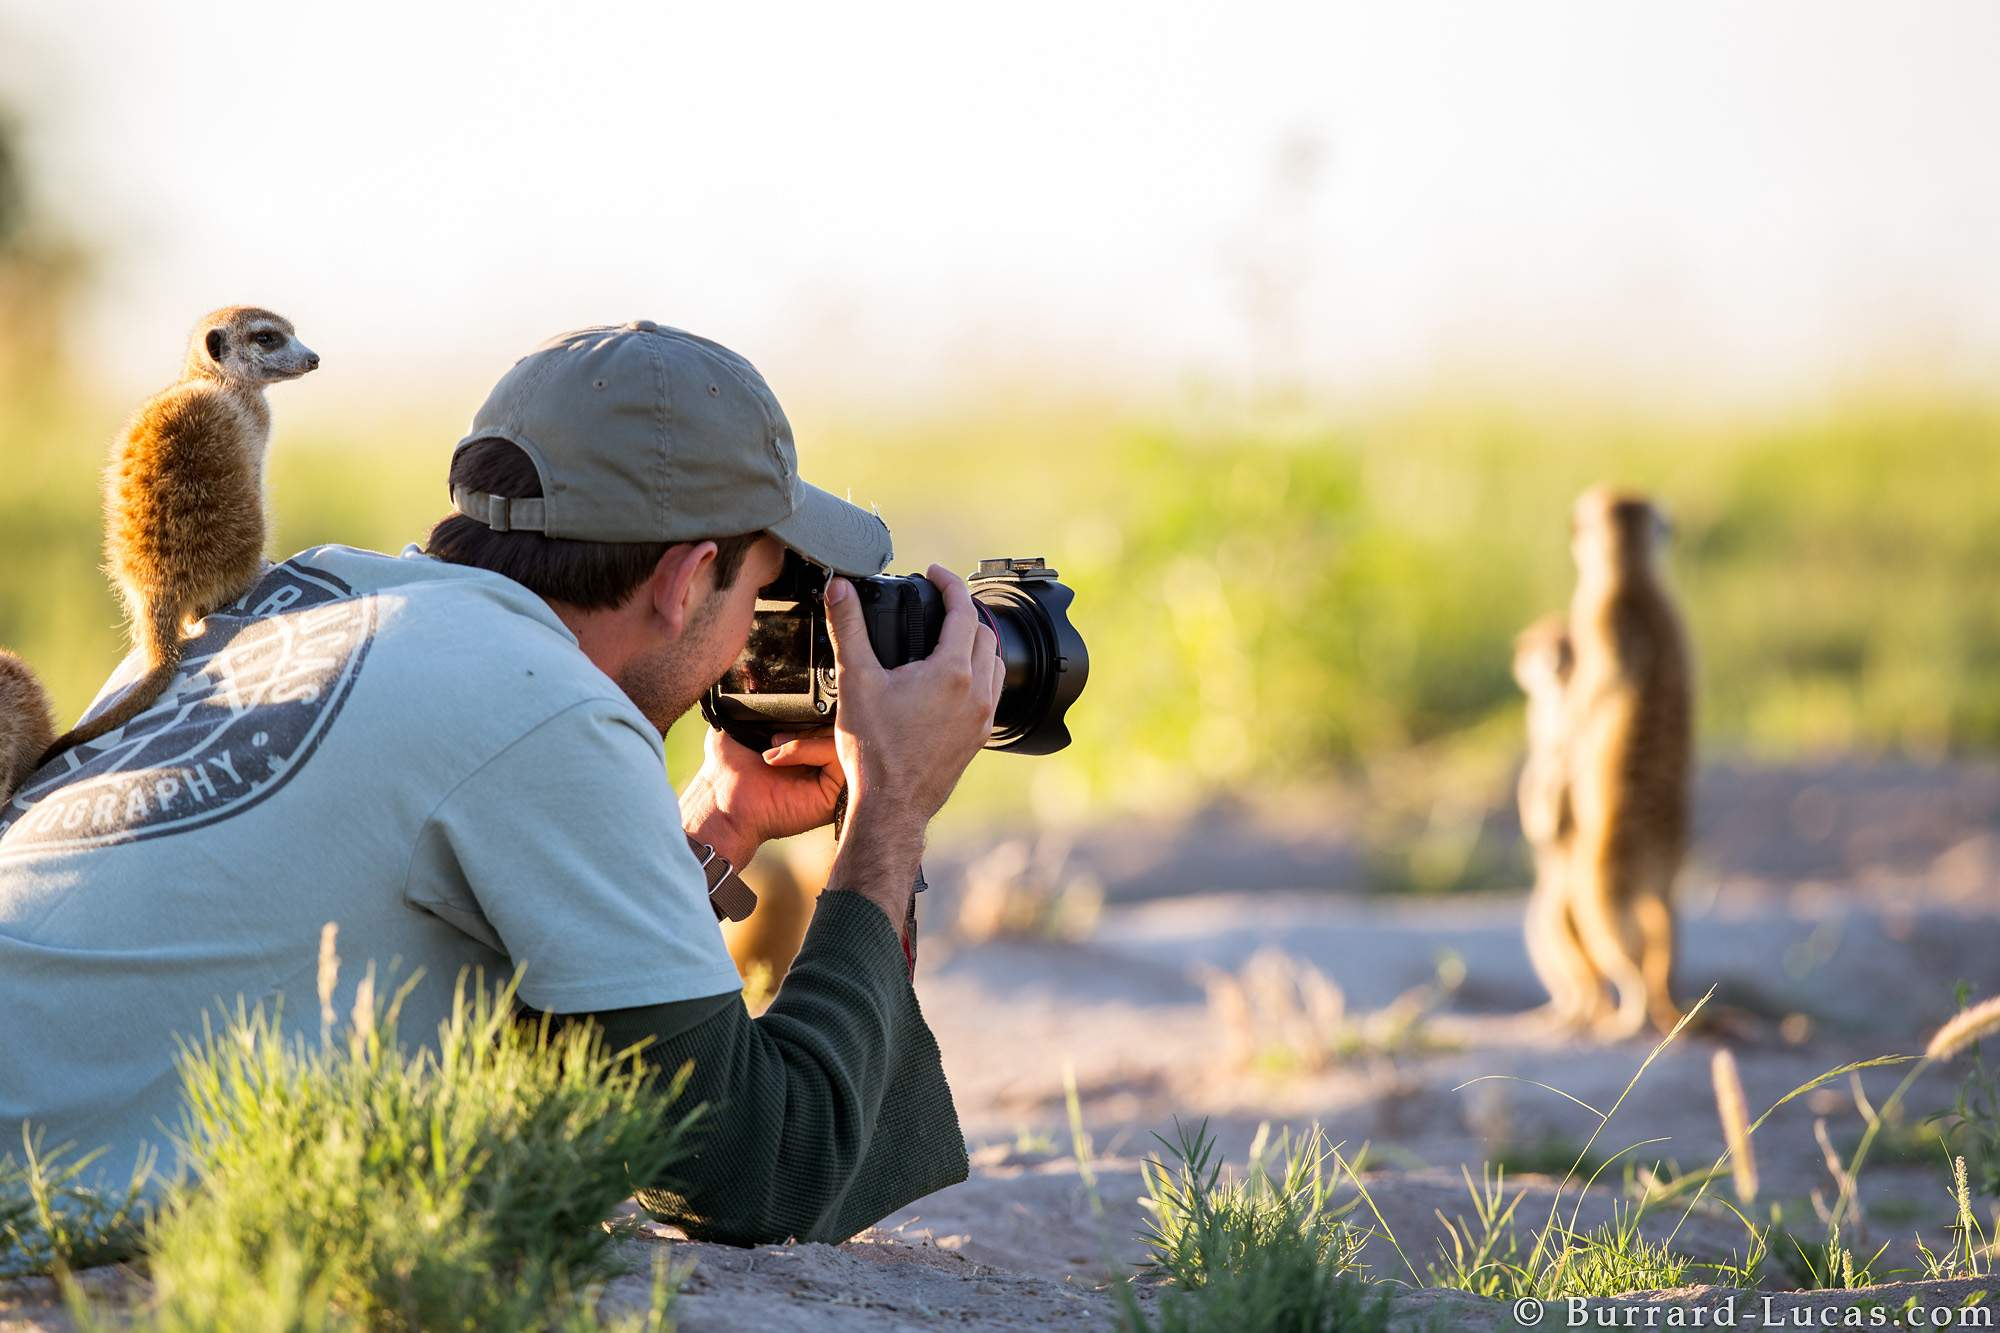 The Nature Conservancy's 2021 Online Contest for photographers with cash prizes Up to $1,000 USD